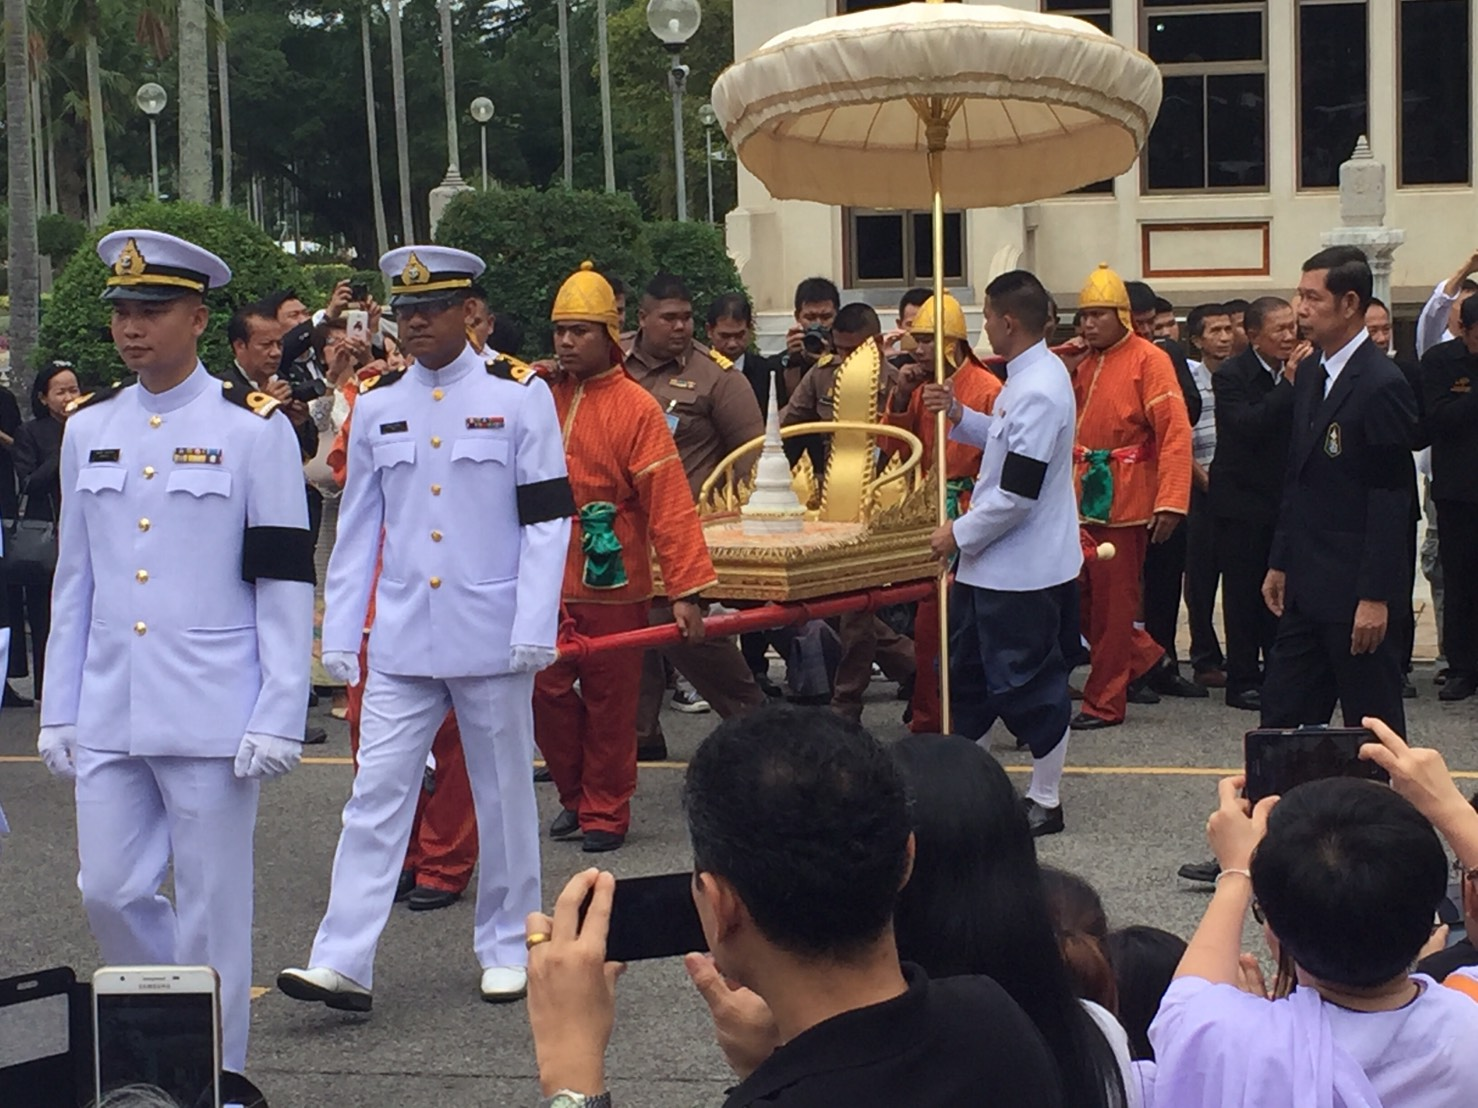 The relics of the late Supreme Patriarch Somdet Phra Nyanasamvara Suvaddhana Mahathera are brought in to be placed in the temple's marble pavilion.